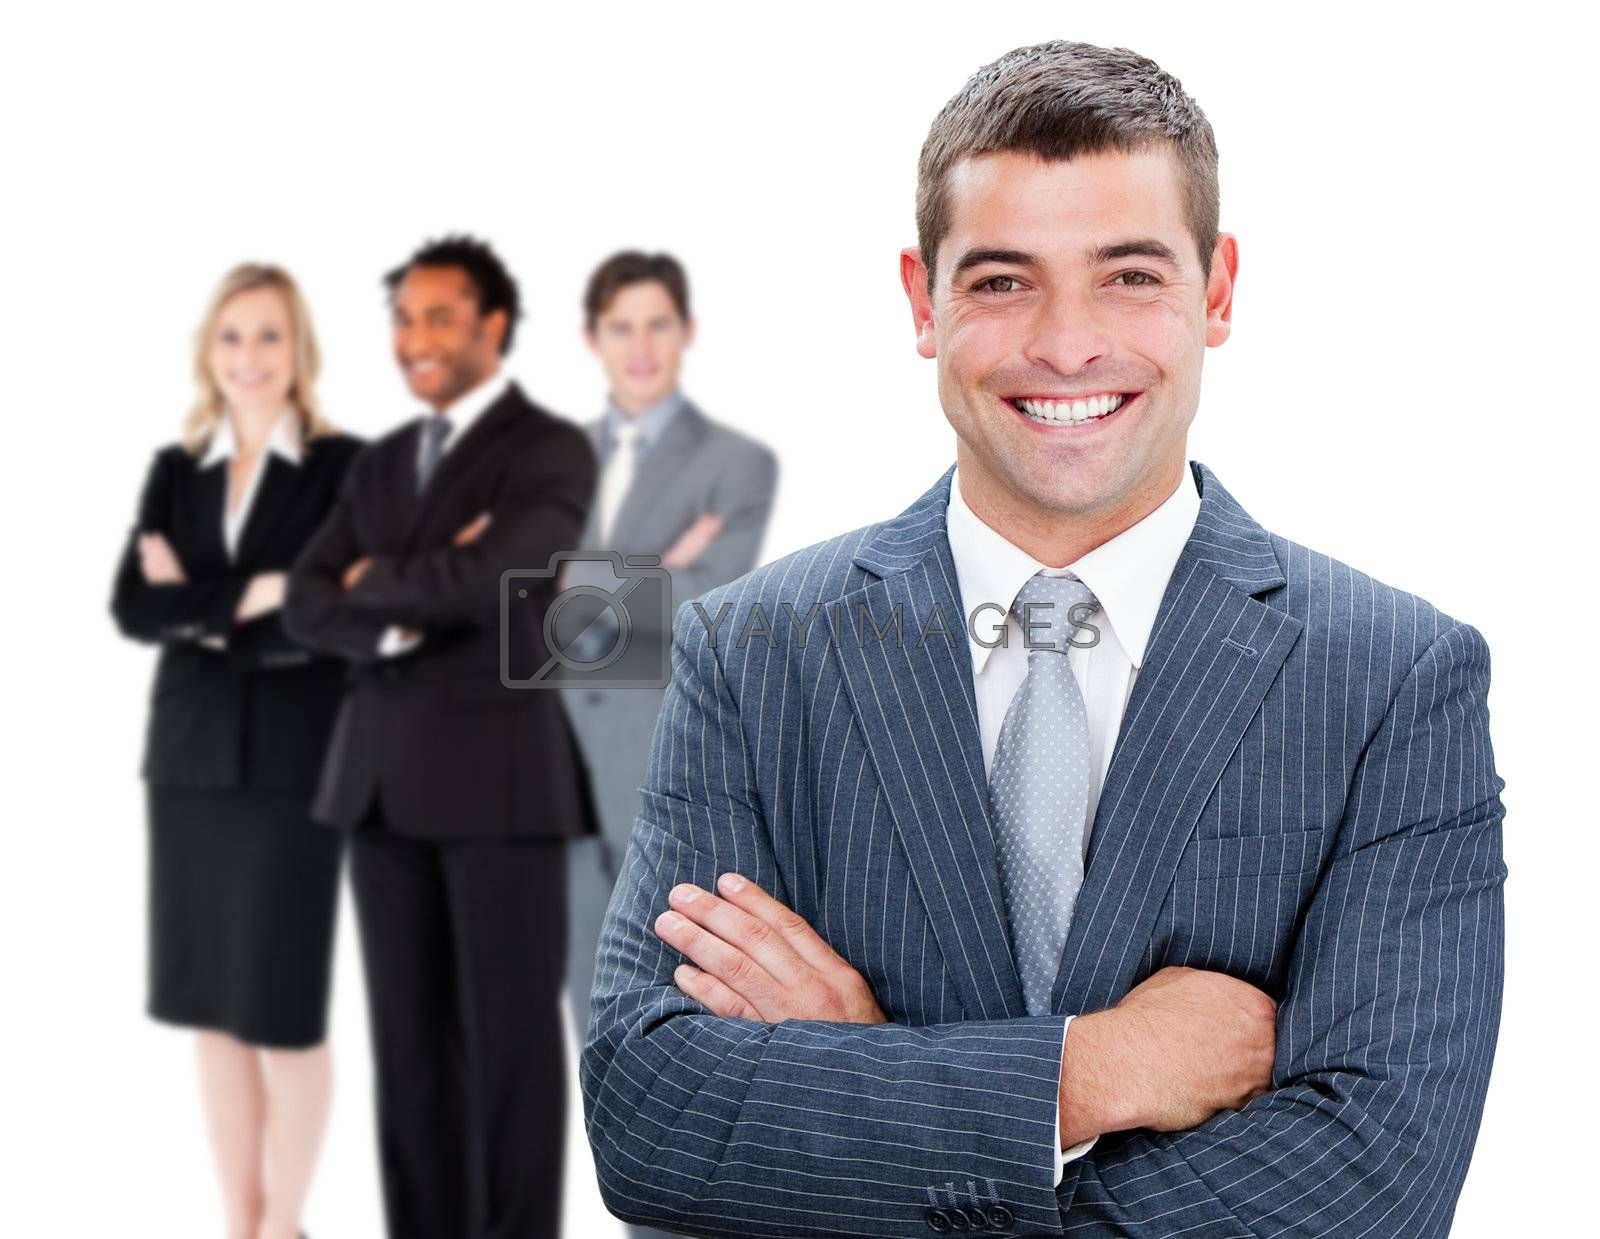 Businessman in front of colleagues against white background